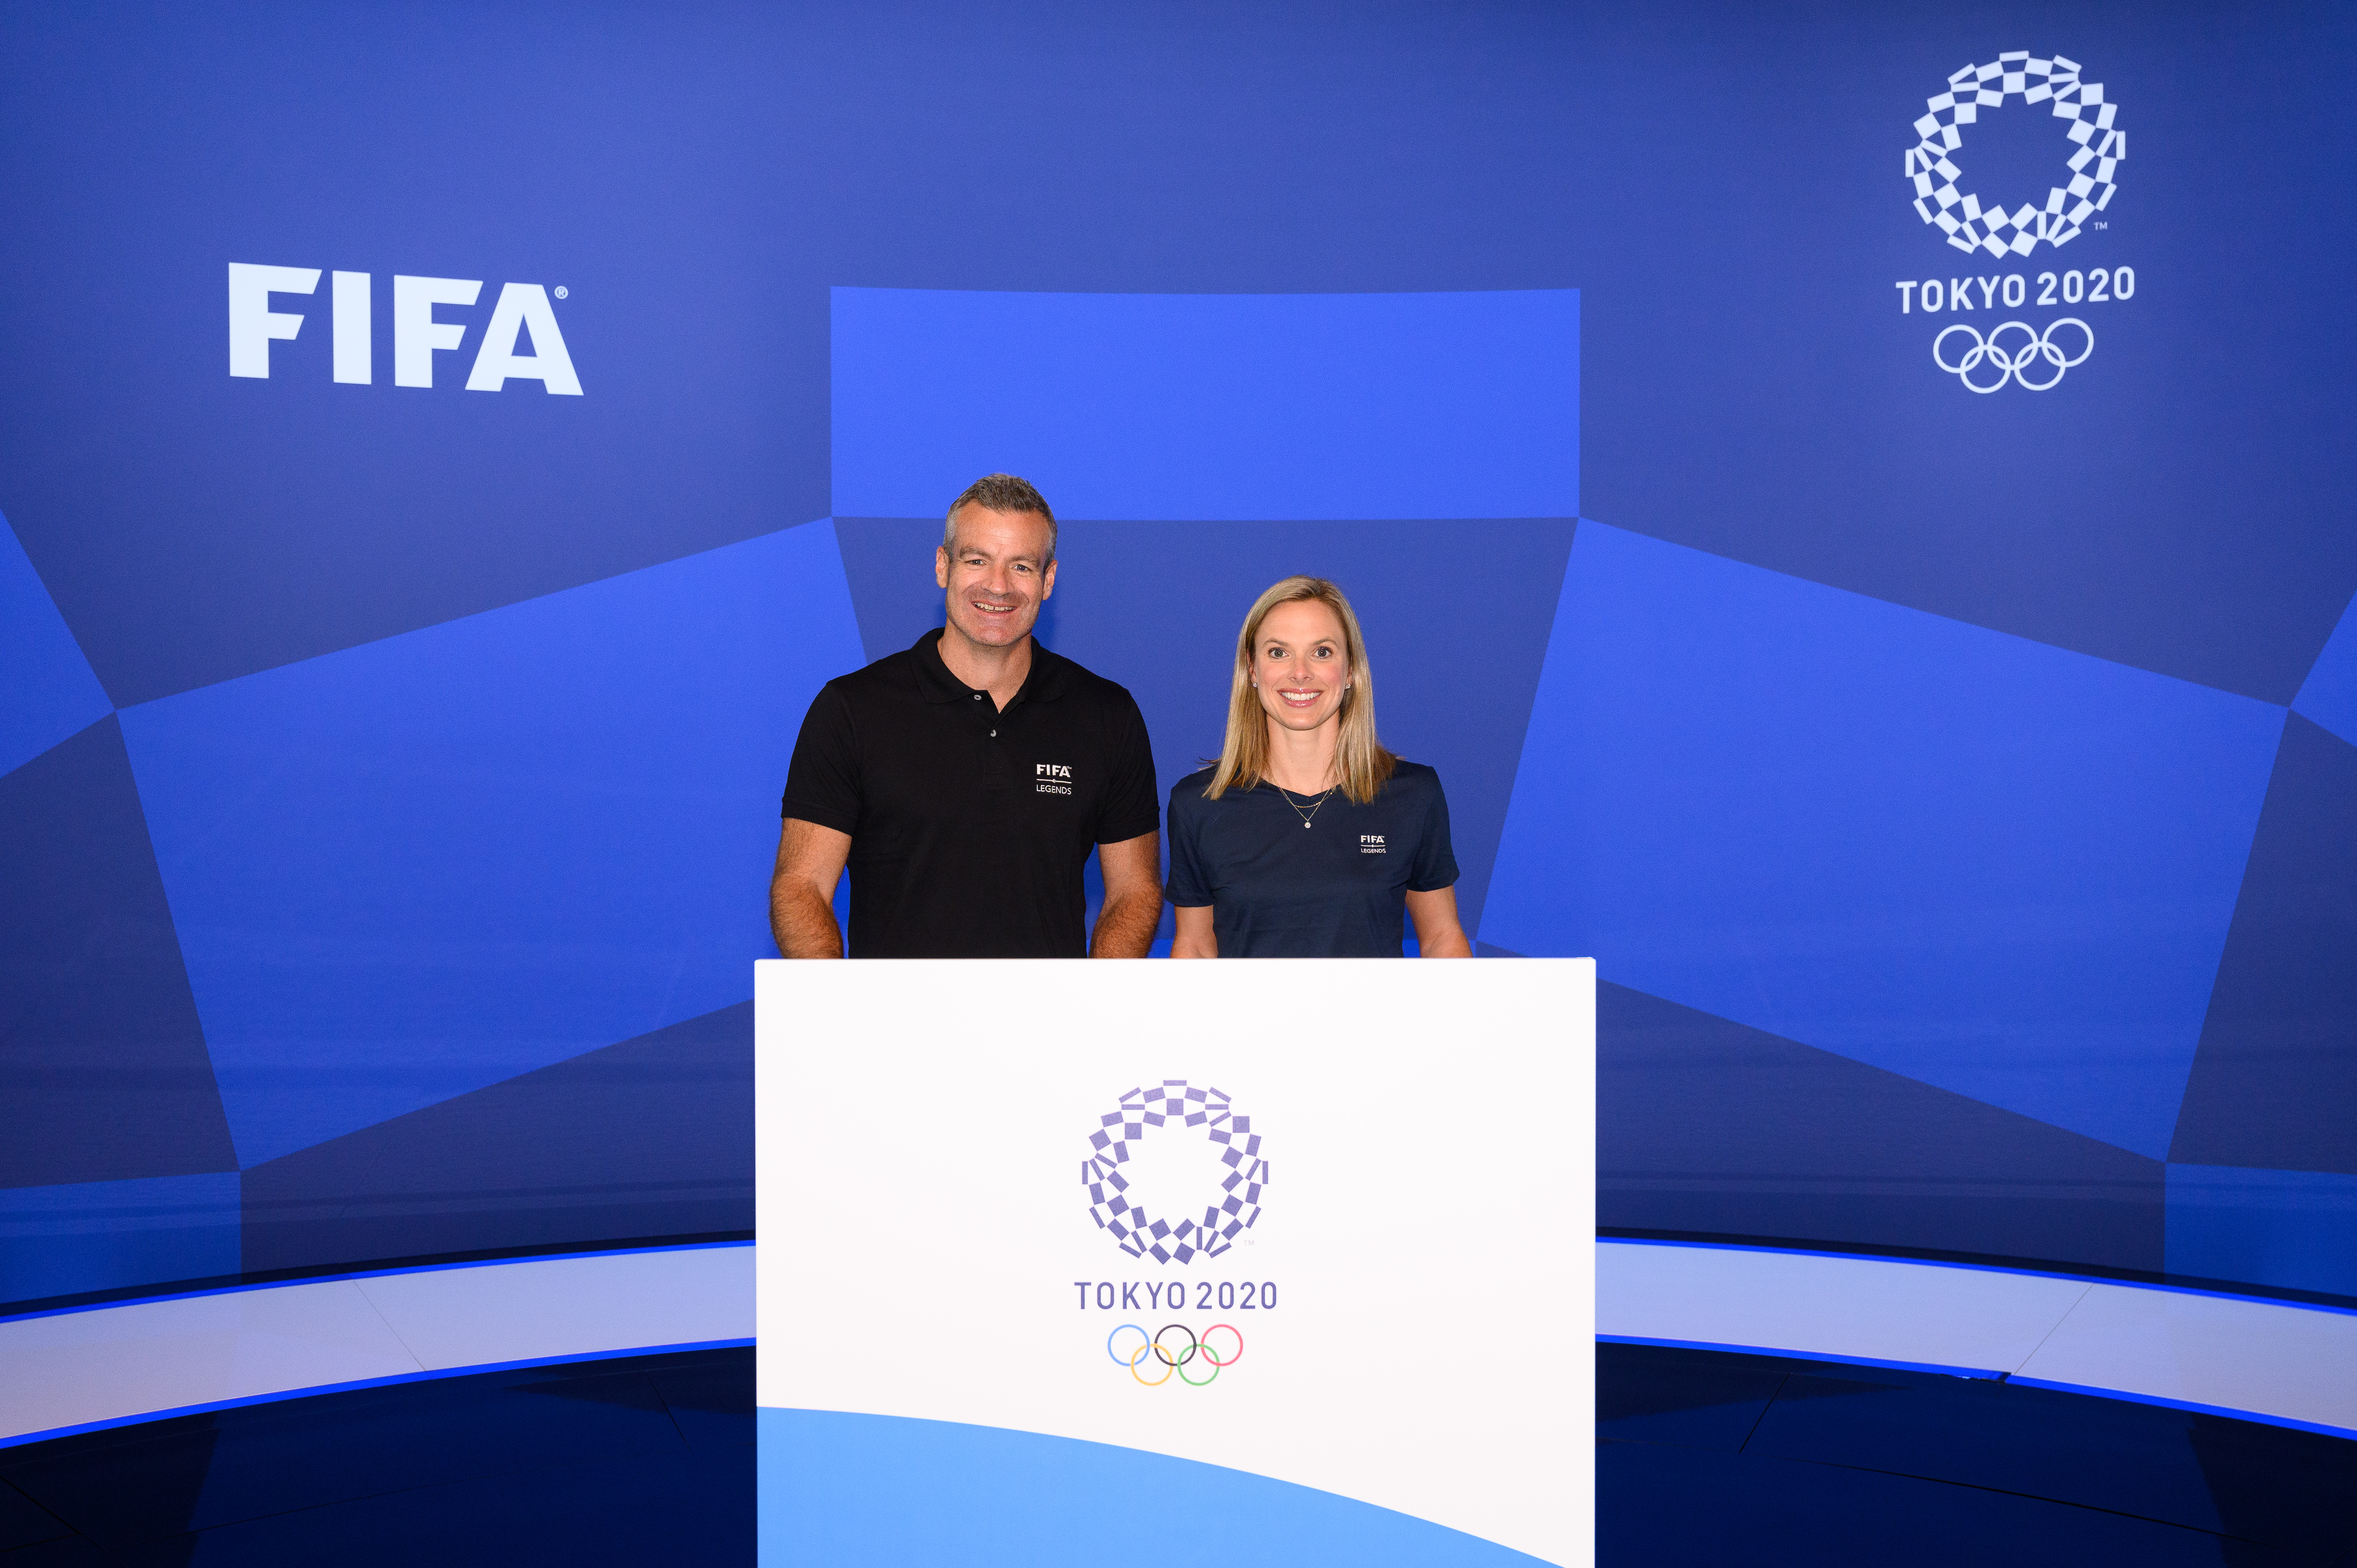 FIFA integrity briefings accomplished forward of Tokyo 2020